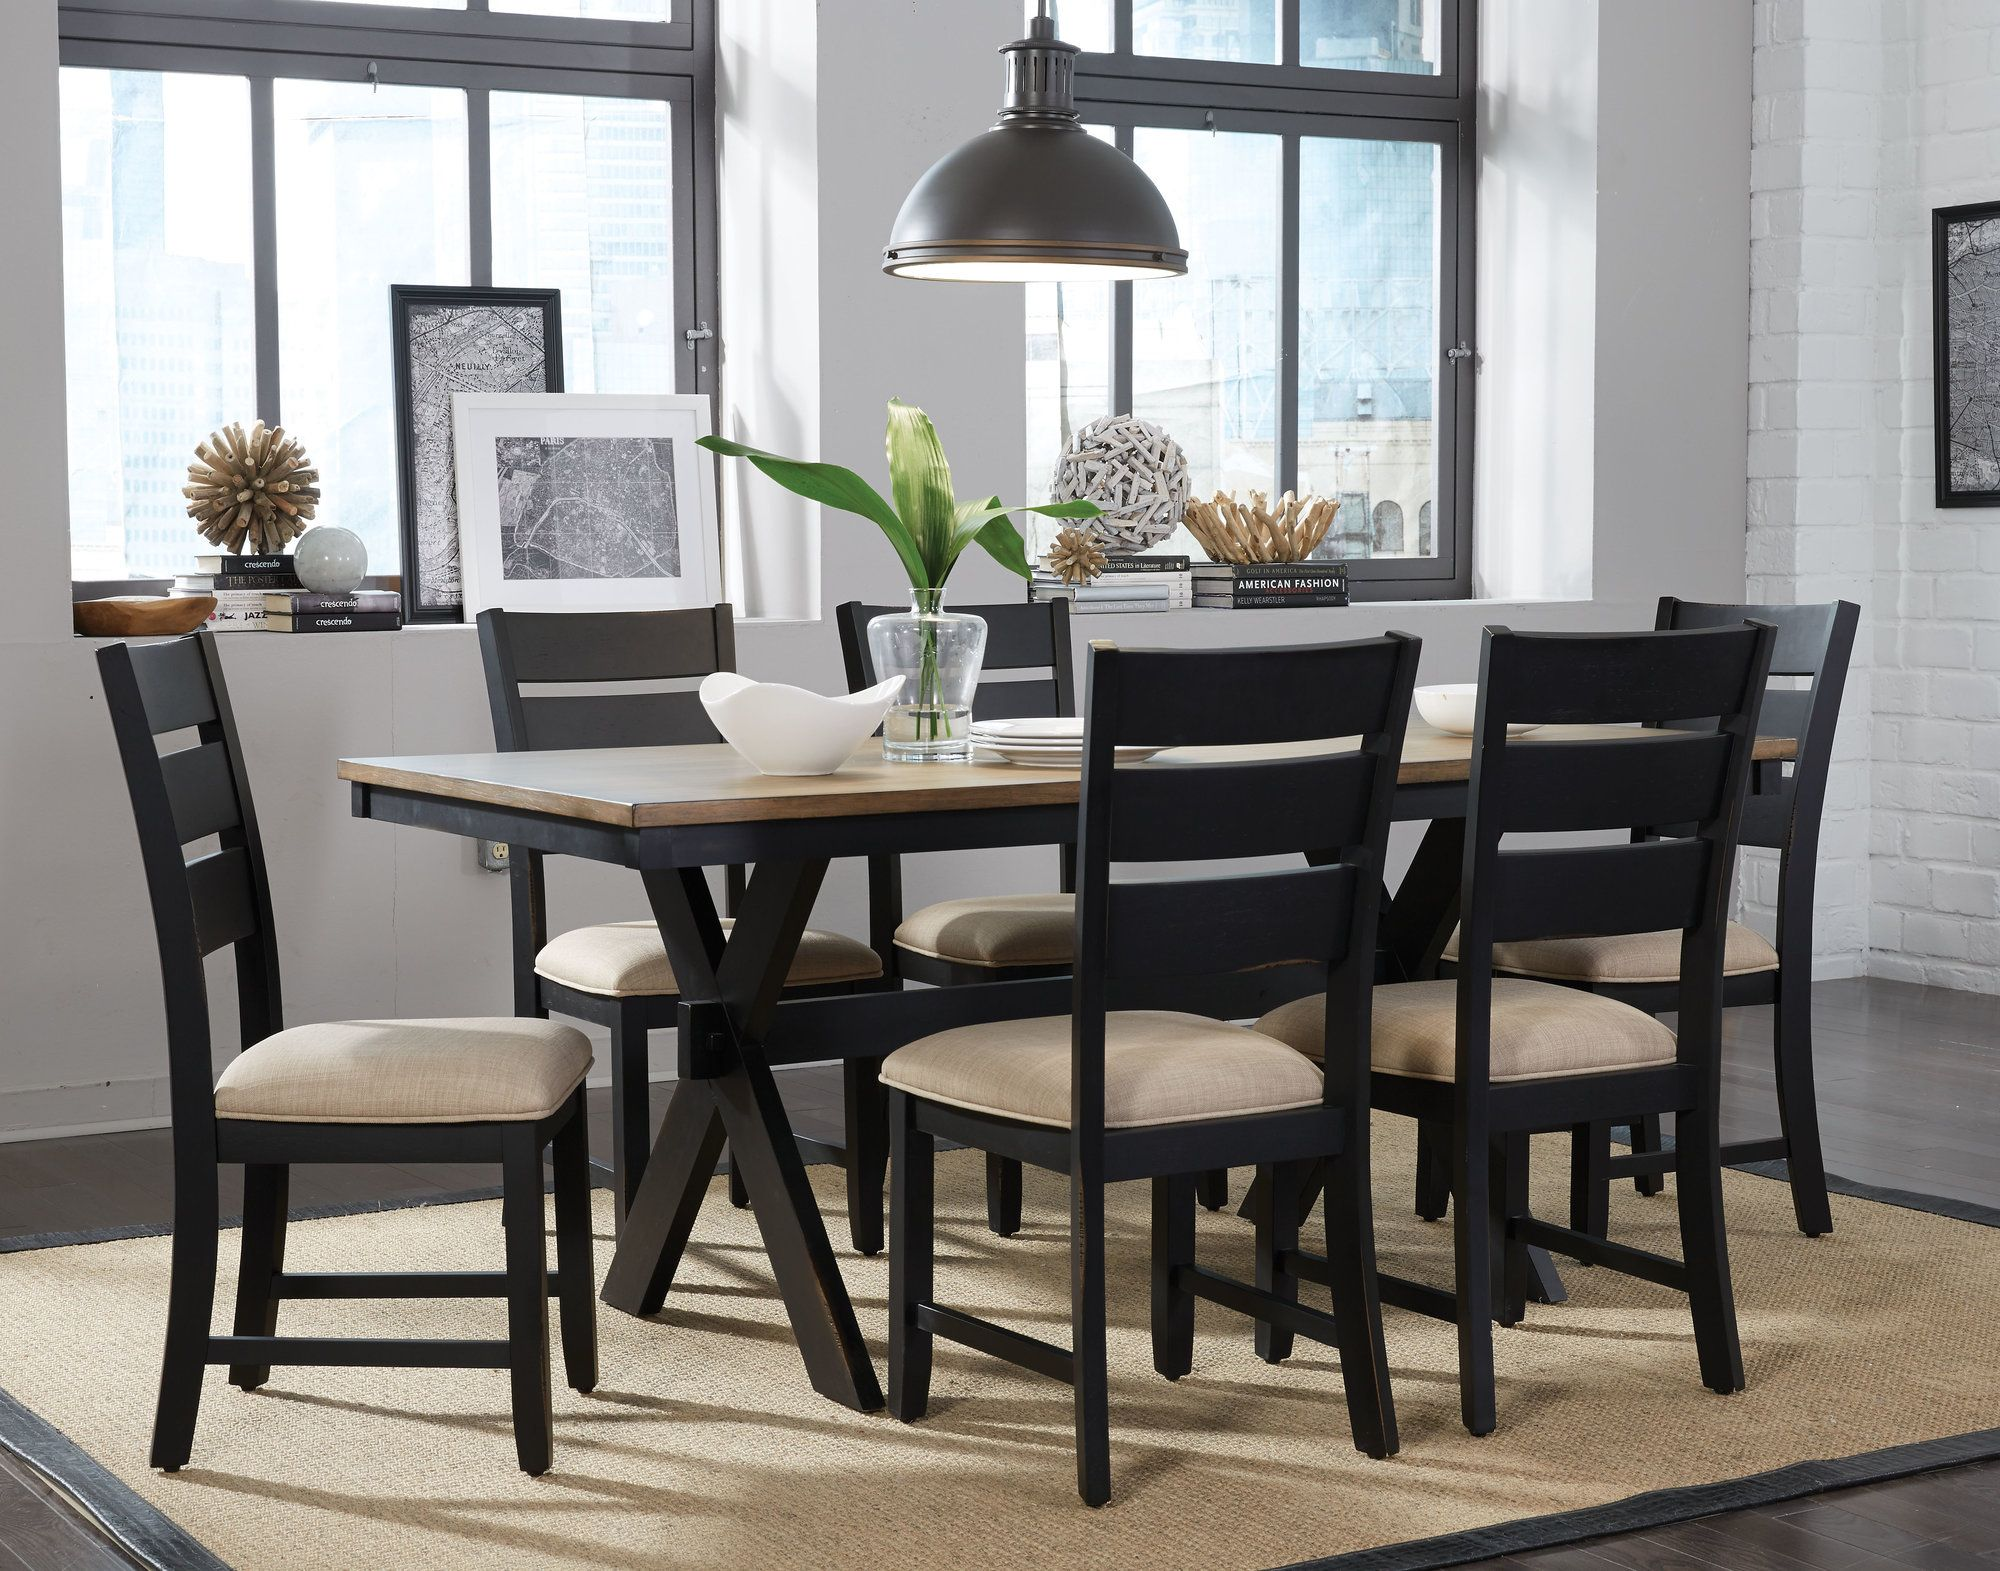 de197a9736 Braydon 7 Piece Dining Set   Products   Kitchen dining sets, Dining ...